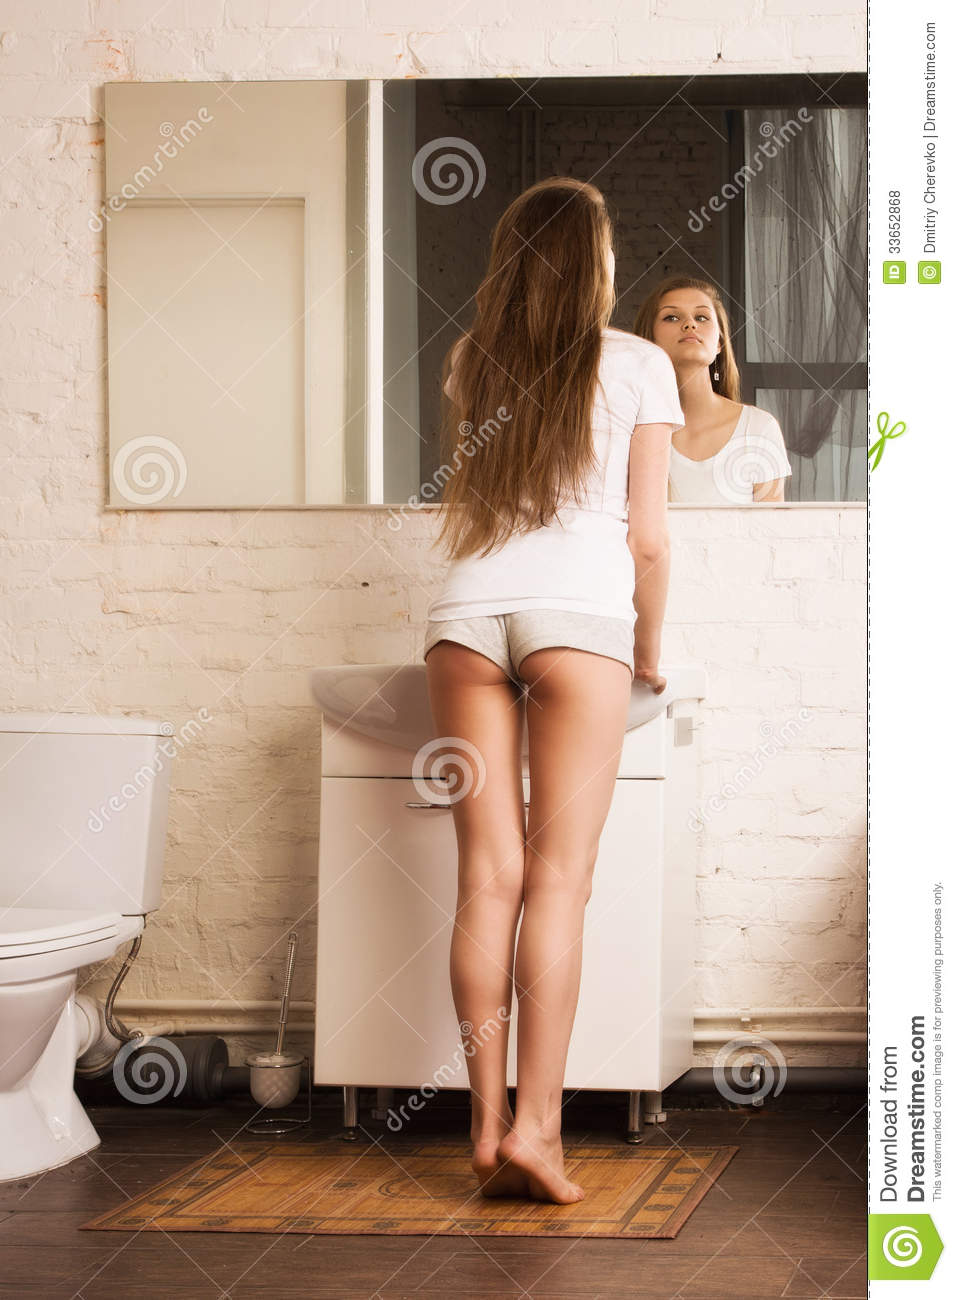 Beautiful girl in the bathroom royalty free stock photos for Bathroom pic of girl